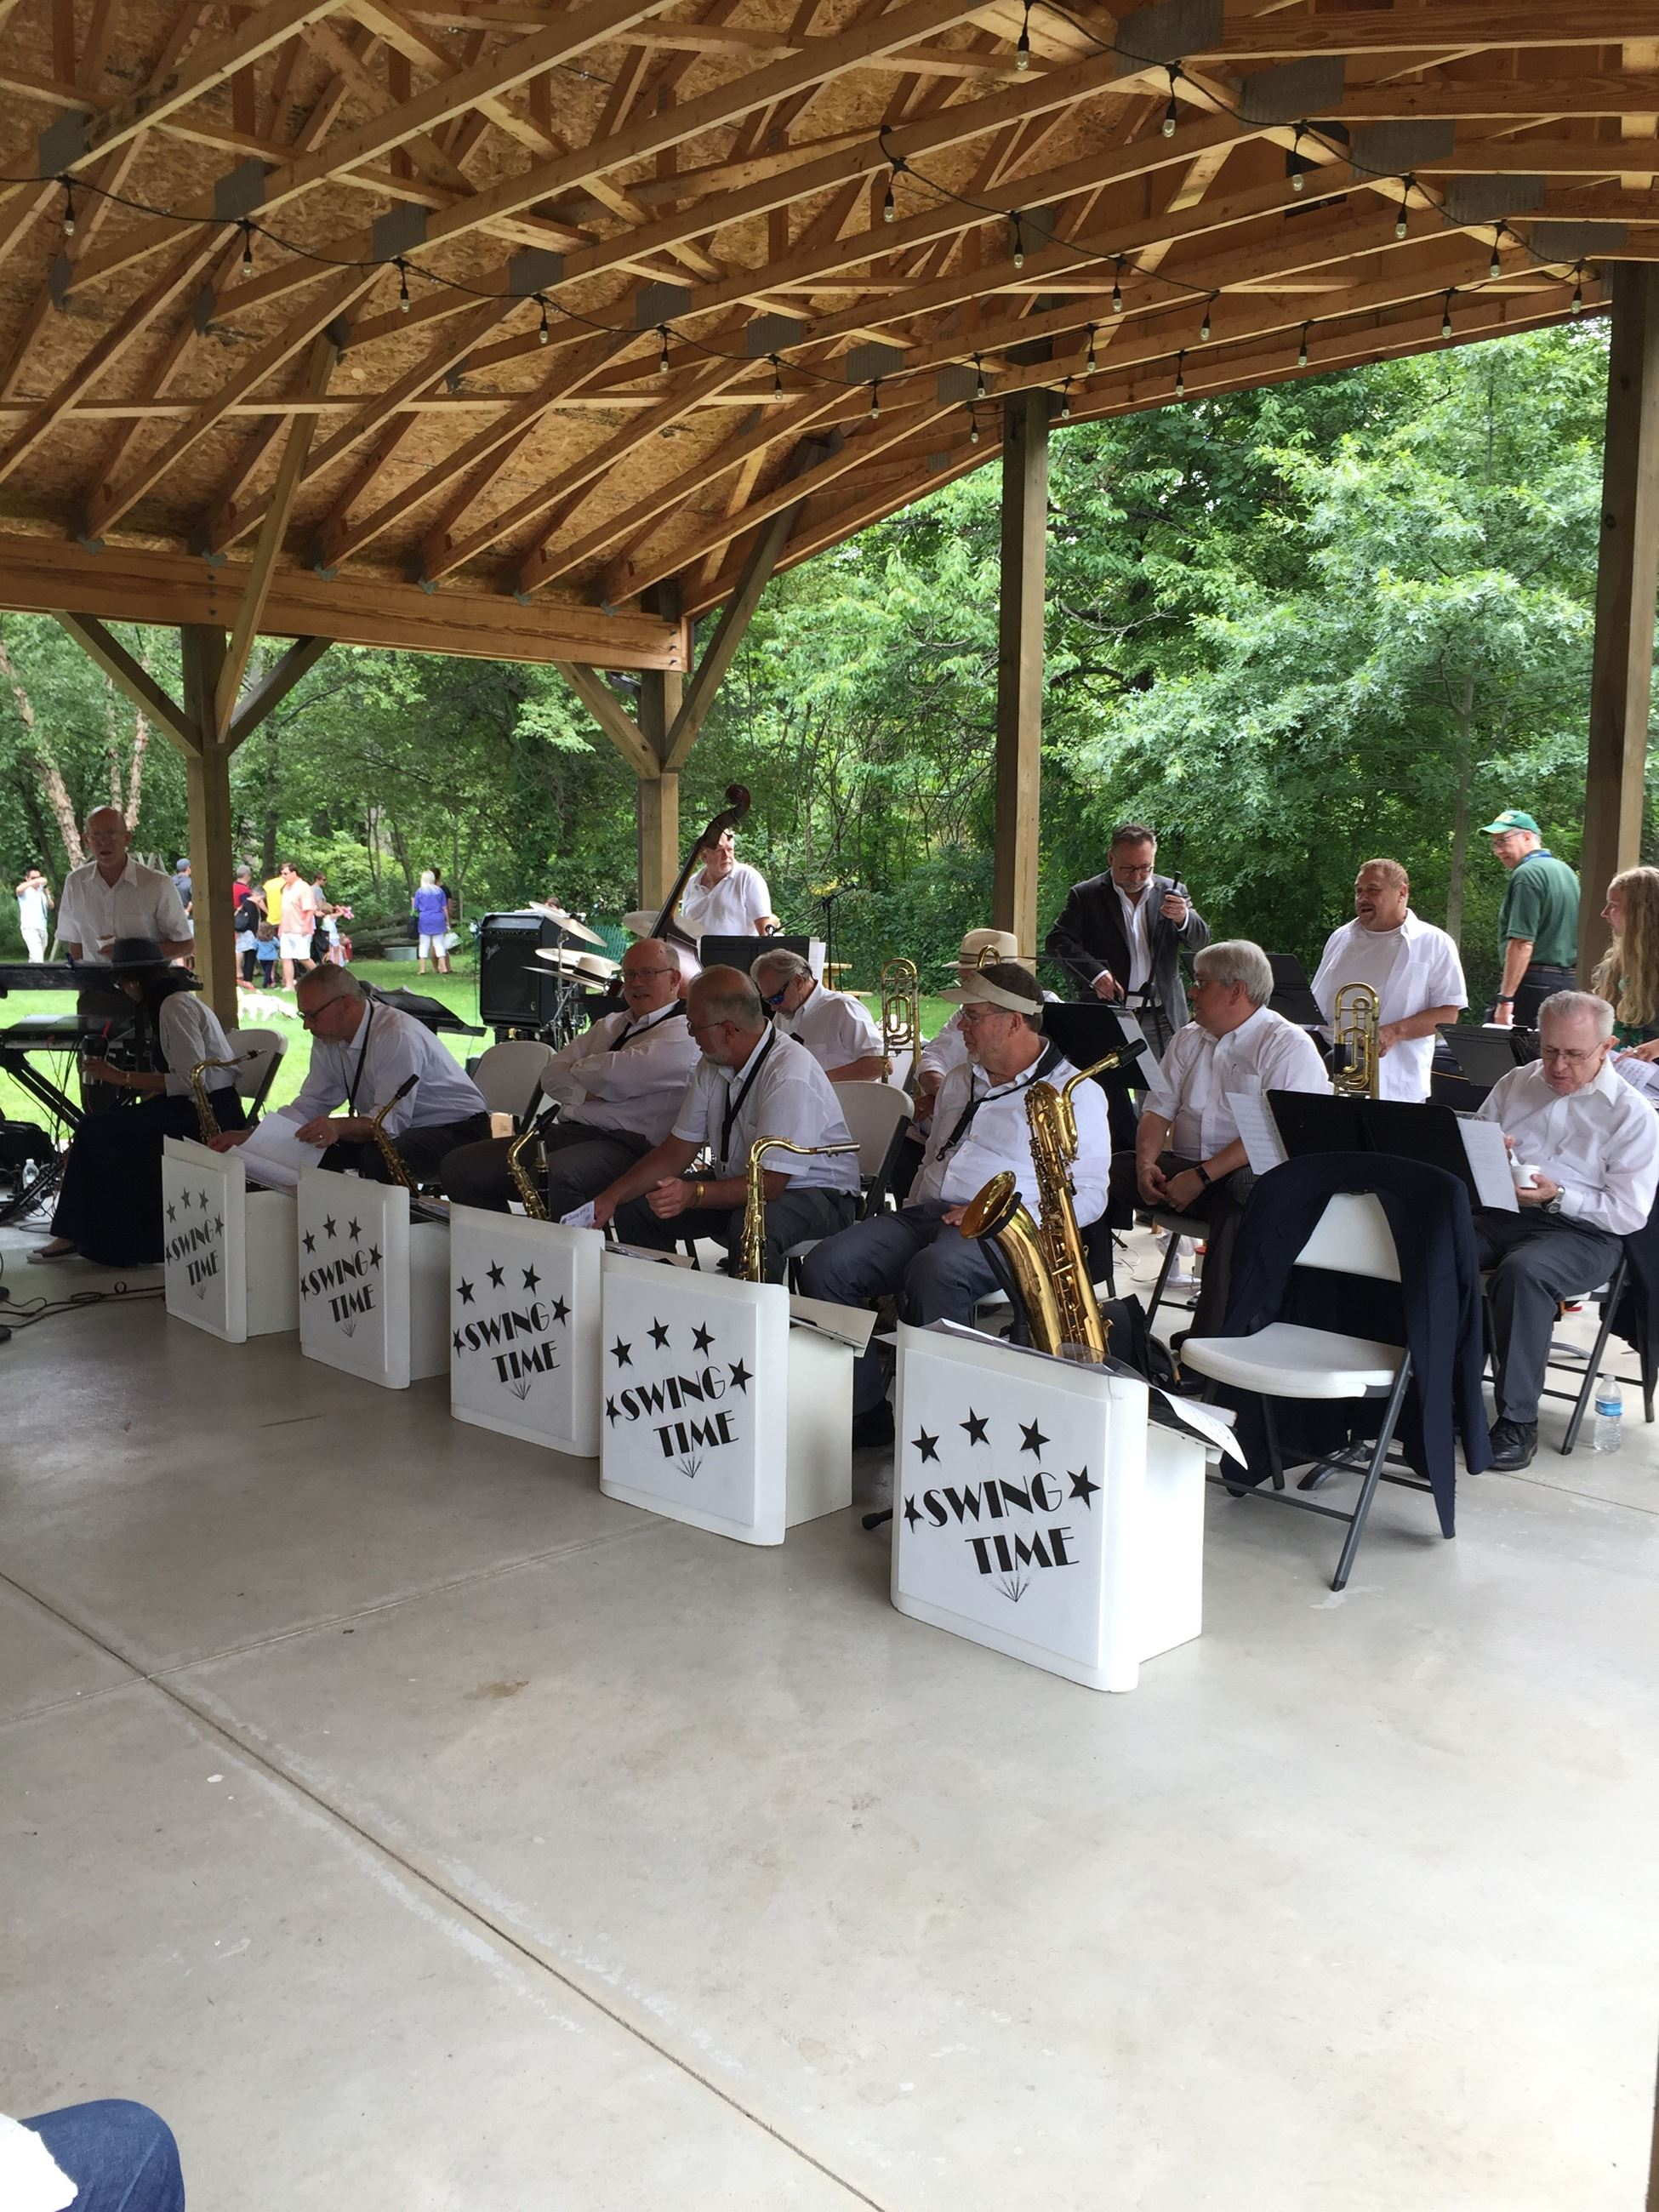 BAND IN PAVILION